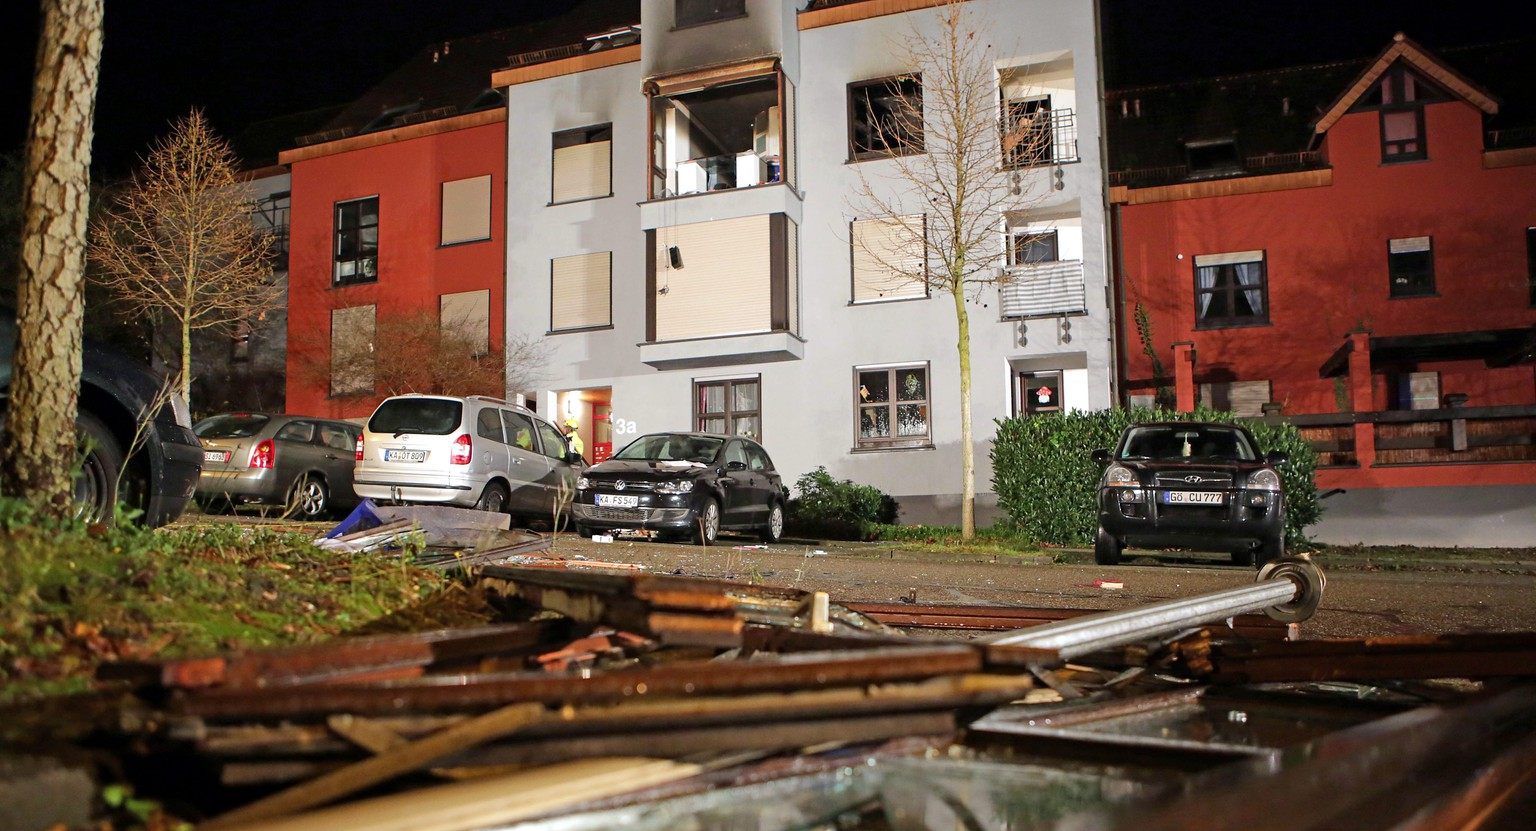 epa05035140 Damage from an explosion in a second floor apartment lies on the street in front of the apartment building, in Karlsruhe, Germany, 20 November 2015. Three people have been found dead after an explosion, according to police.  EPA/Jodo-Foto / Joerg Donecke